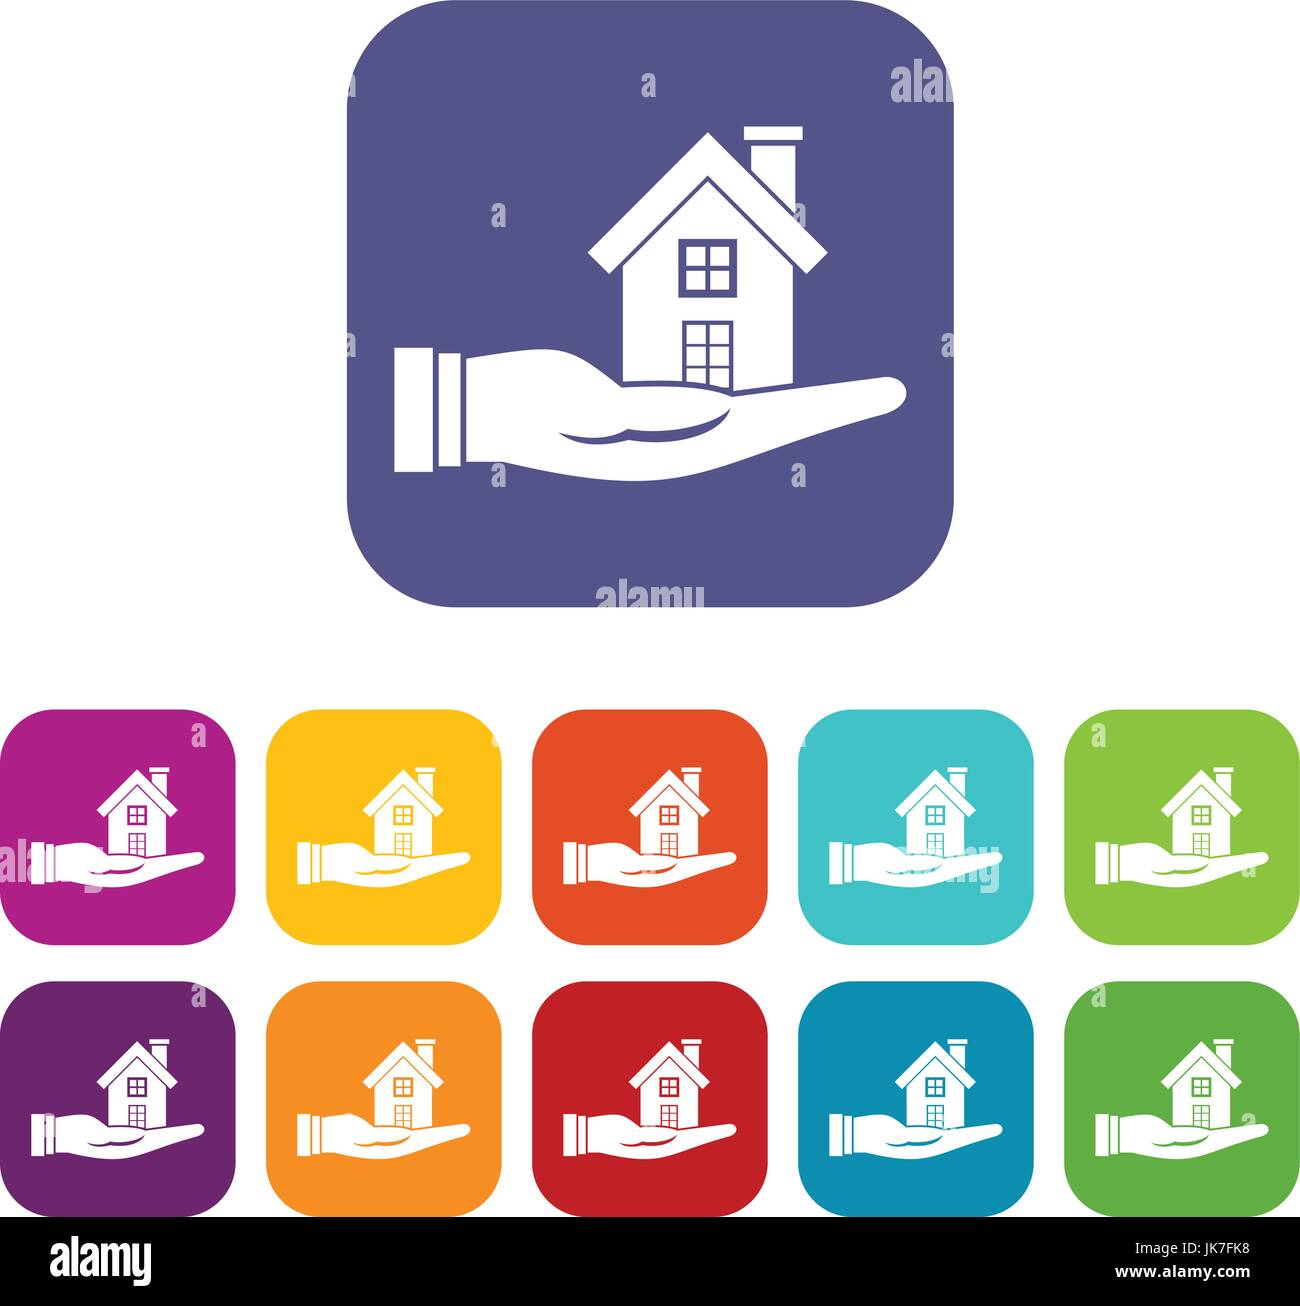 House in hand icons set - Stock Image